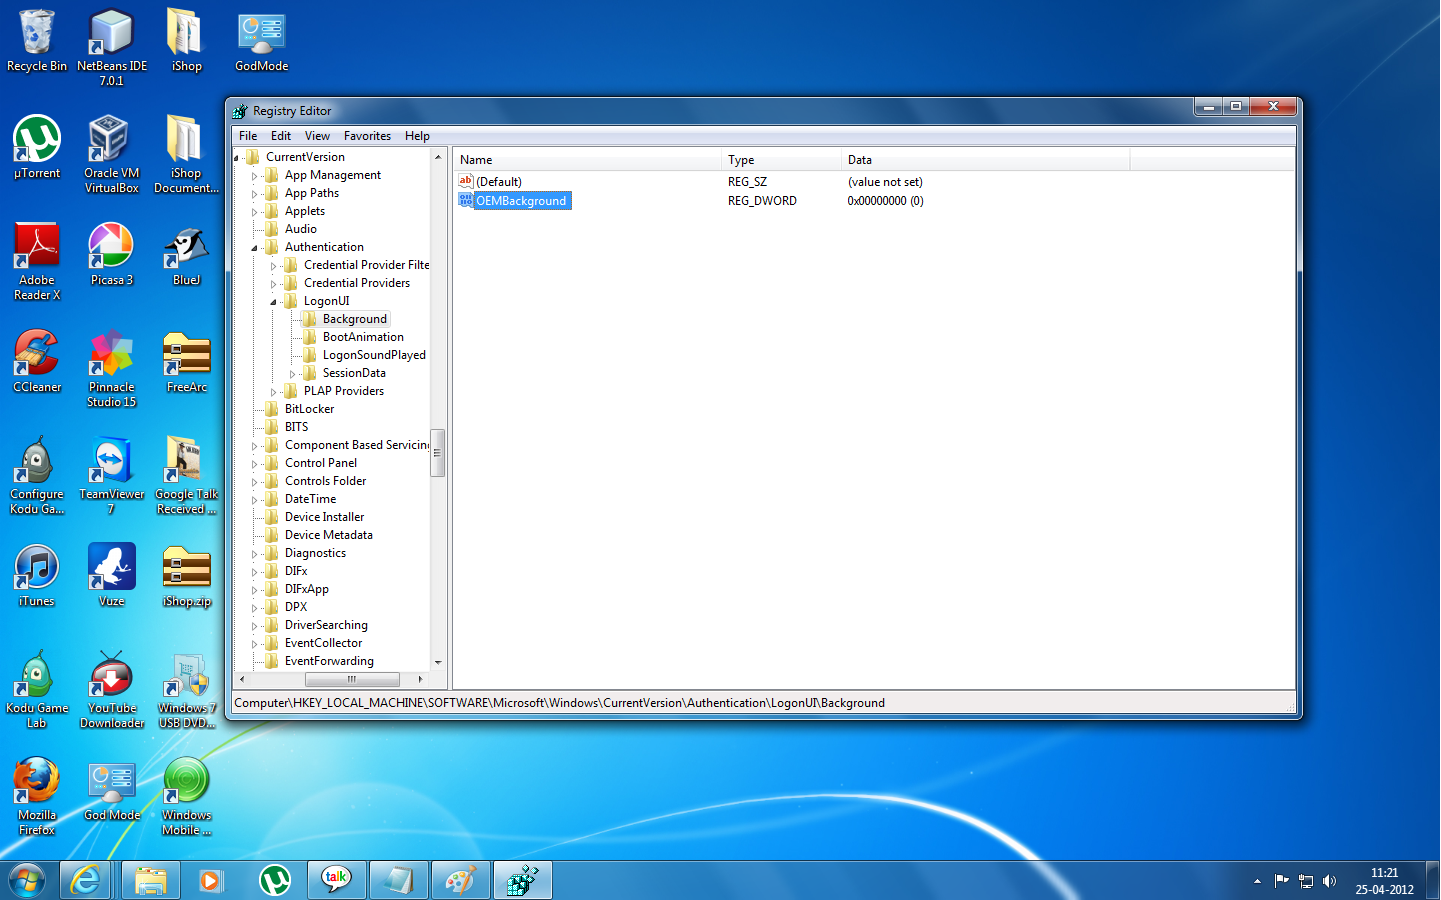 how to get double screen on windows 7